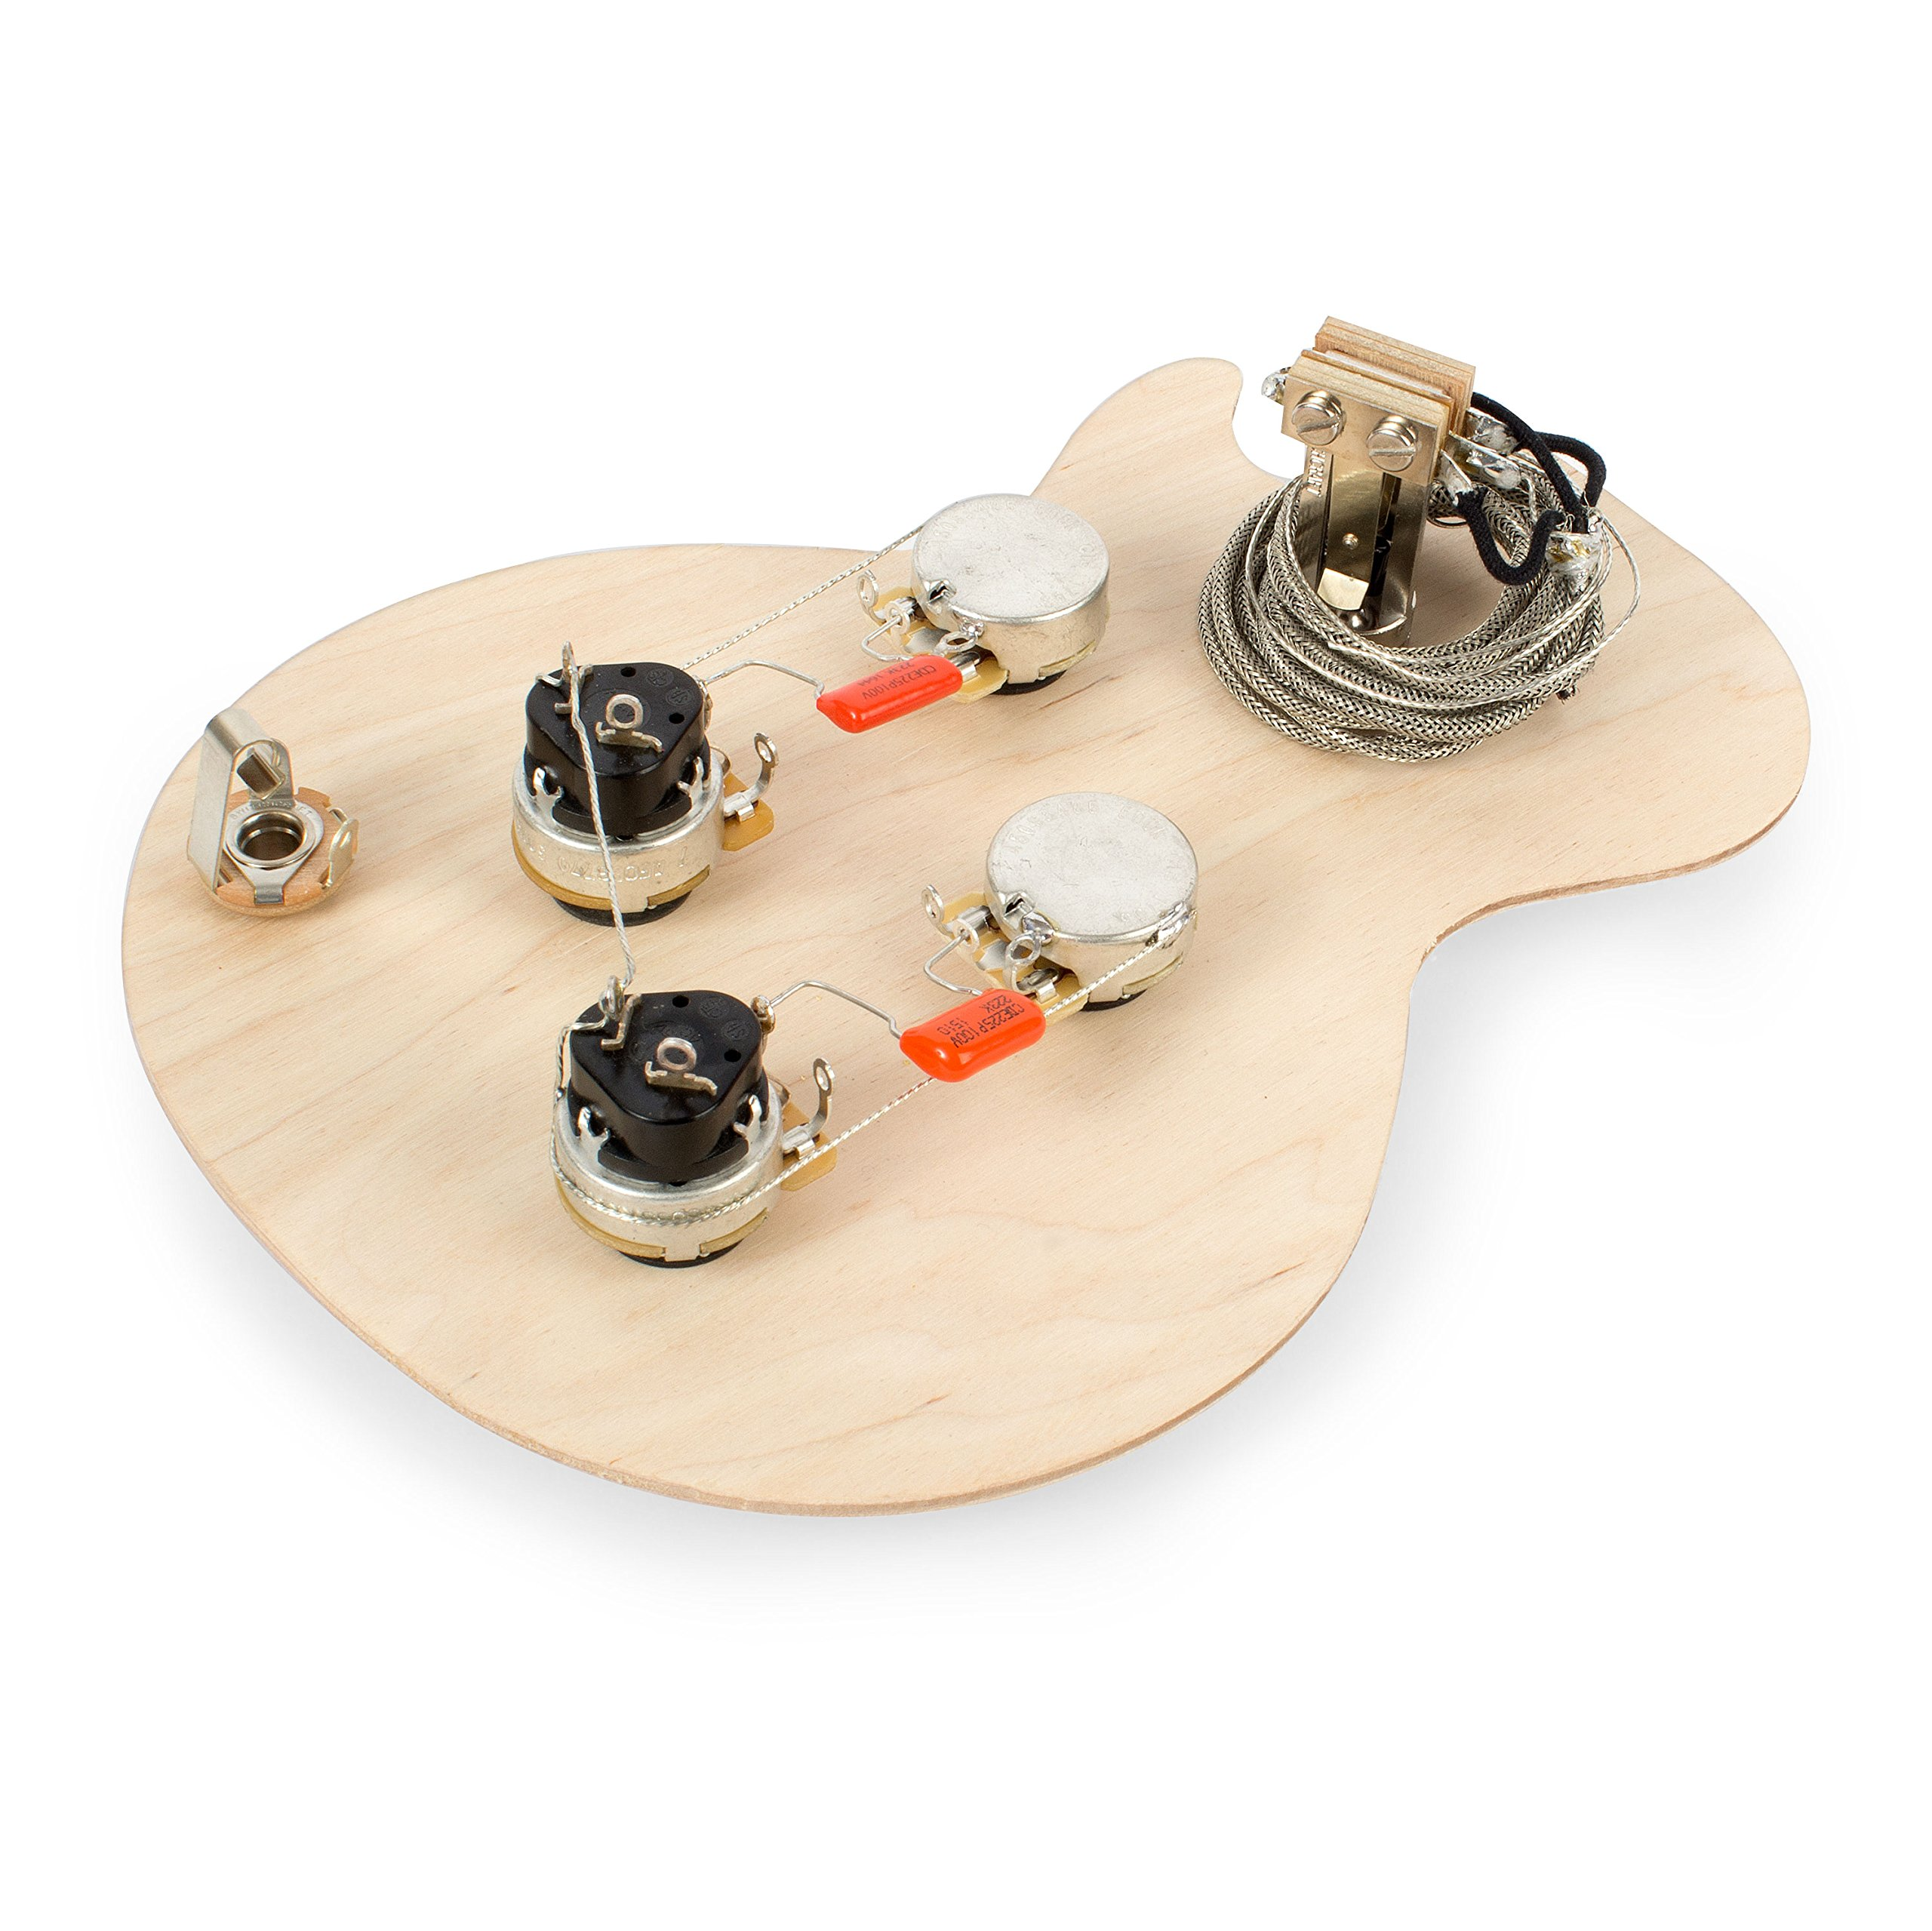 Golden Age Pre-wired Harness for Gibson Les Paul with Push-pull Pots, with  Long-shaft CTS Pots